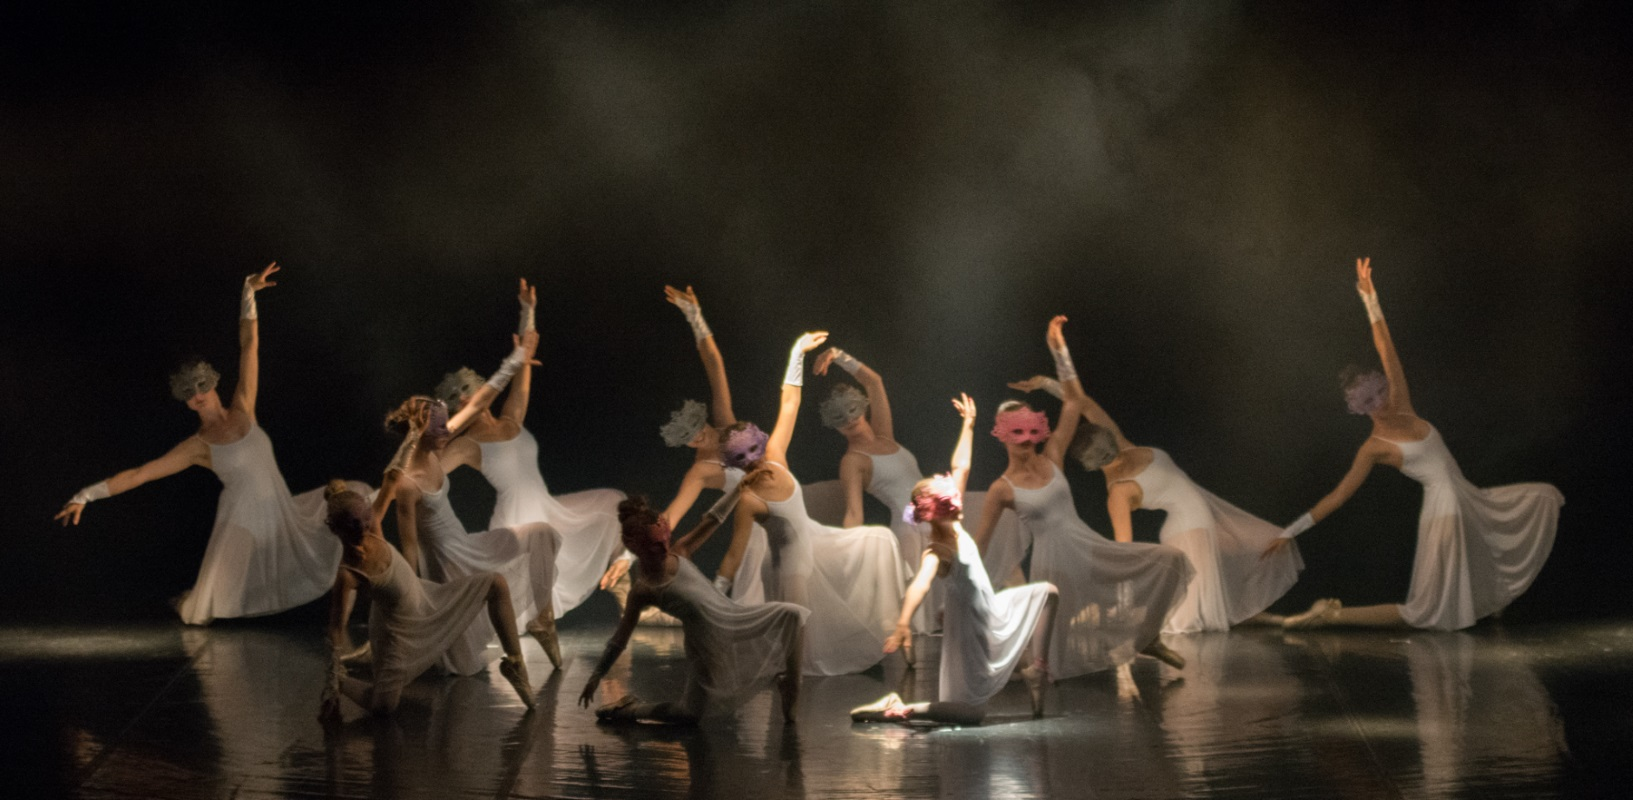 photo de spectacle de danse